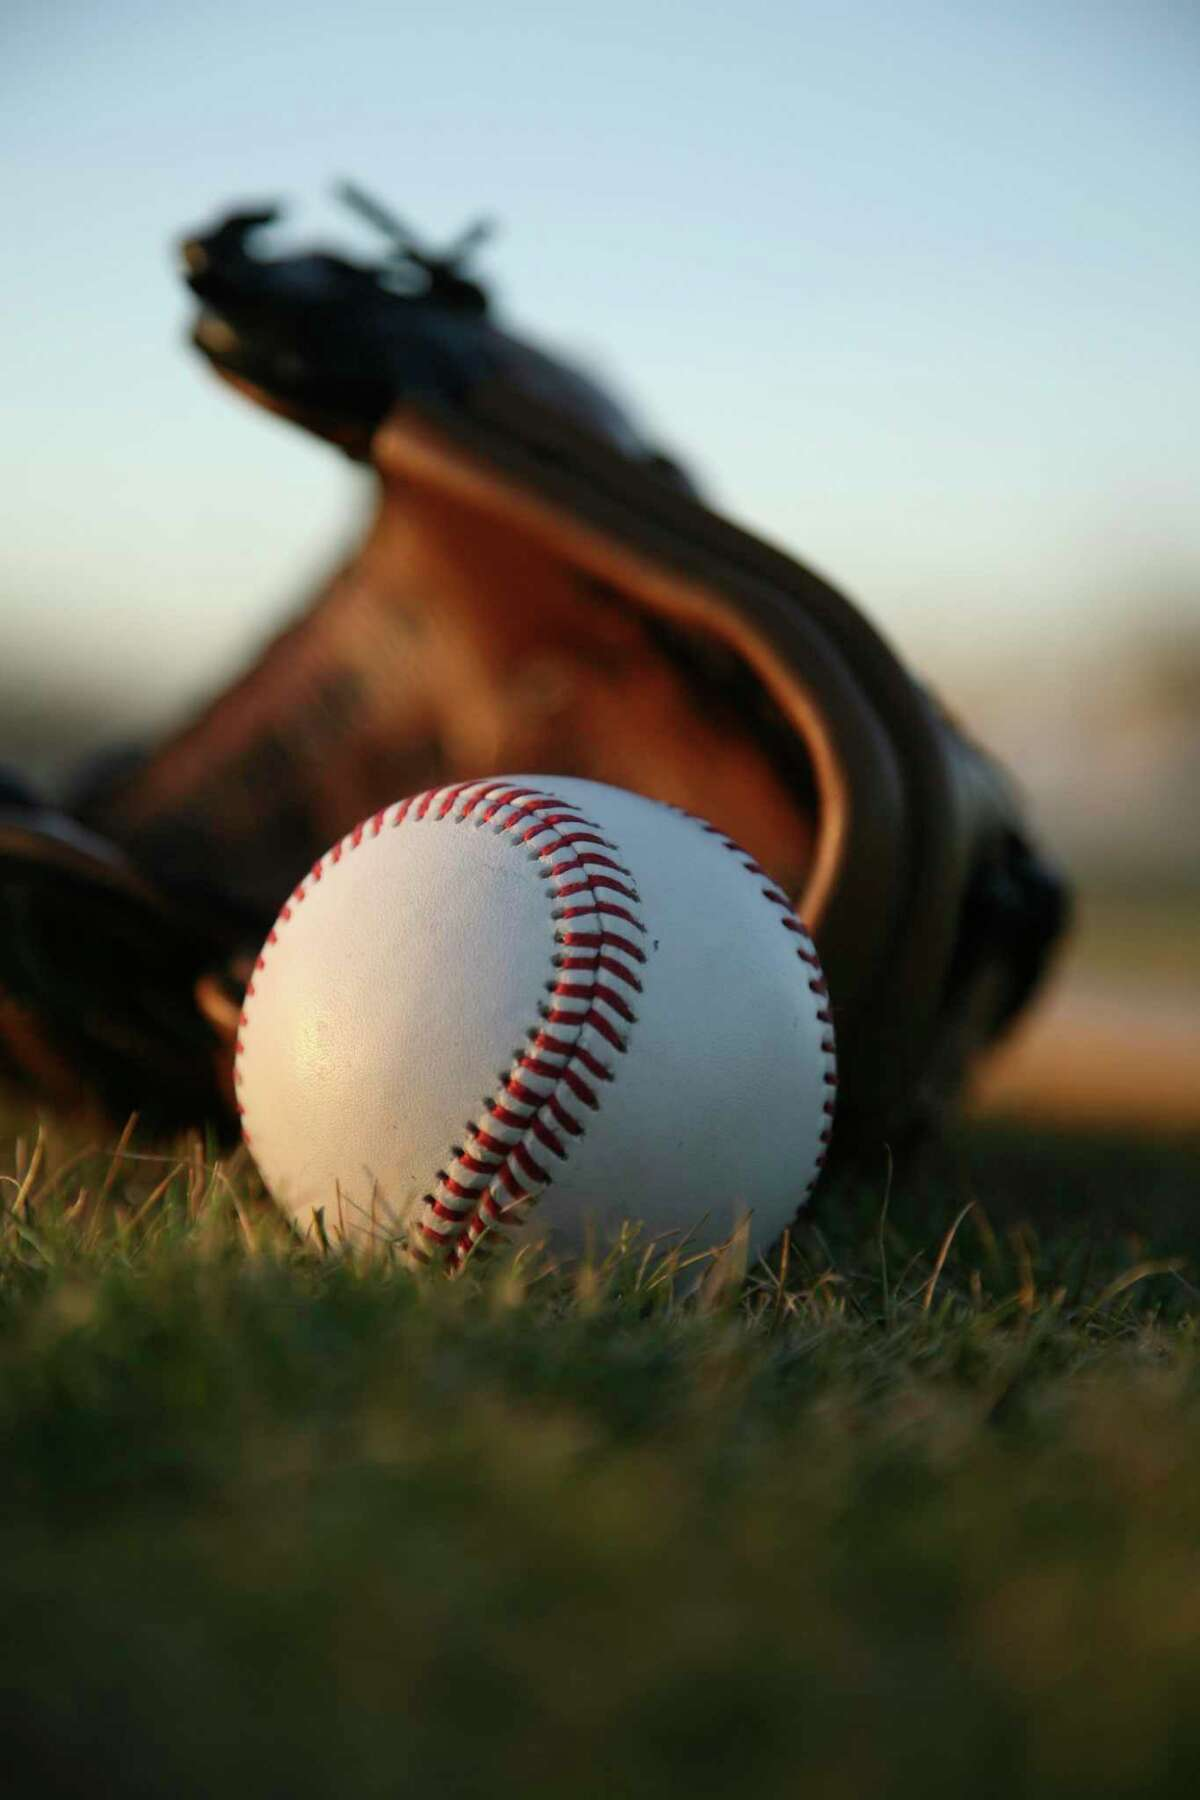 The Central Connecticut State baseball team has gotten some strong contributions from its freshmen.